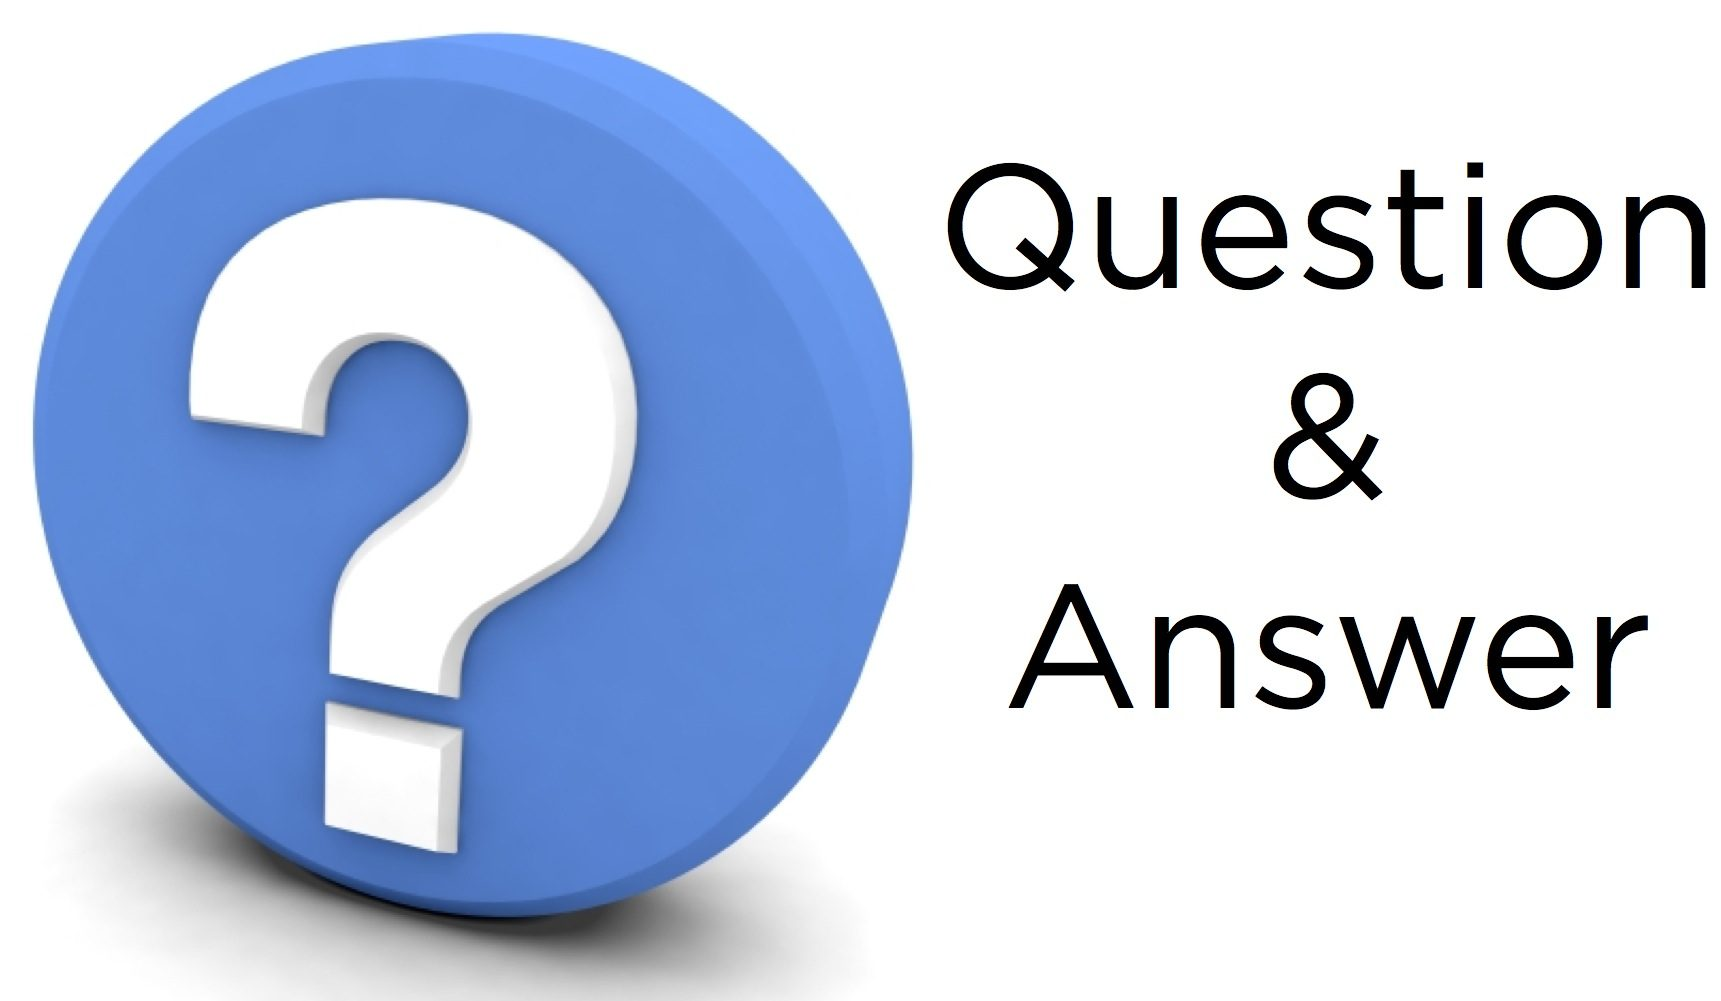 questions and answers Questions and answers (q&as) about vaccines and the diseases that are prevented, including chickenpox, influenza, pertussis, tetanus, hepatitis a, hepatitis b, hpv, hib, meningitis, and more.